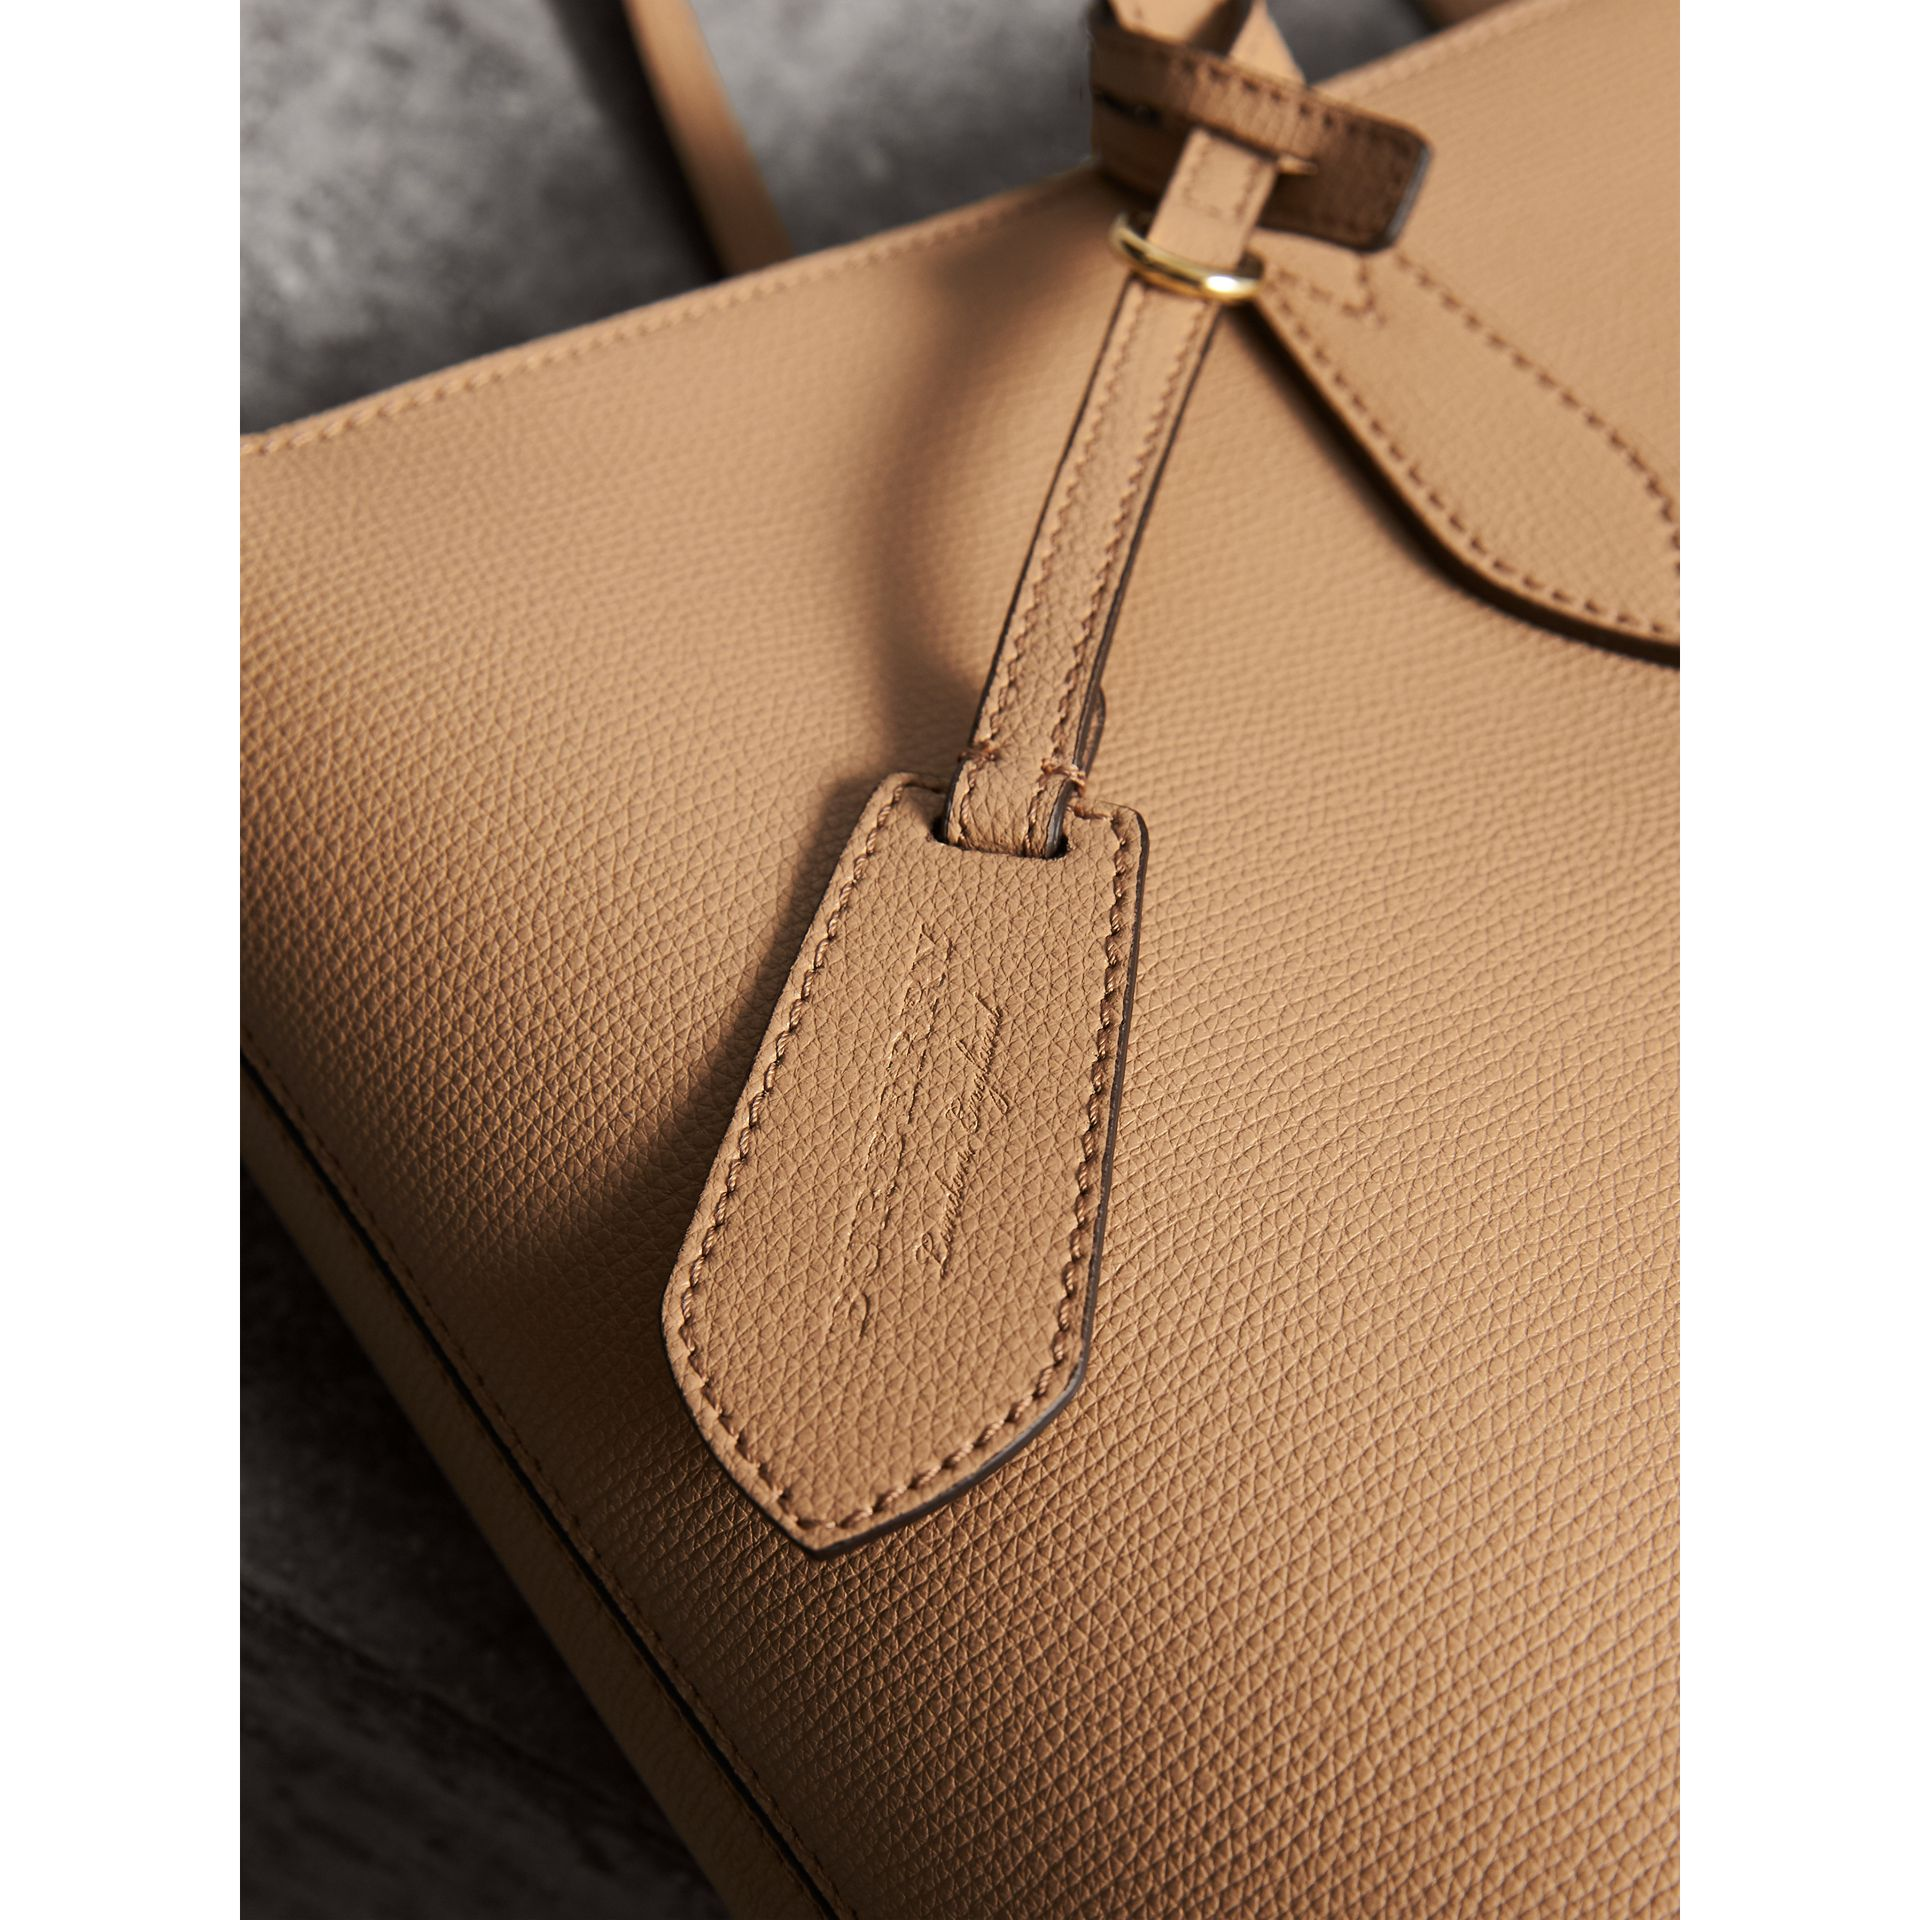 Medium Coated Leather Tote in Mid Camel - Women | Burberry Australia - gallery image 2